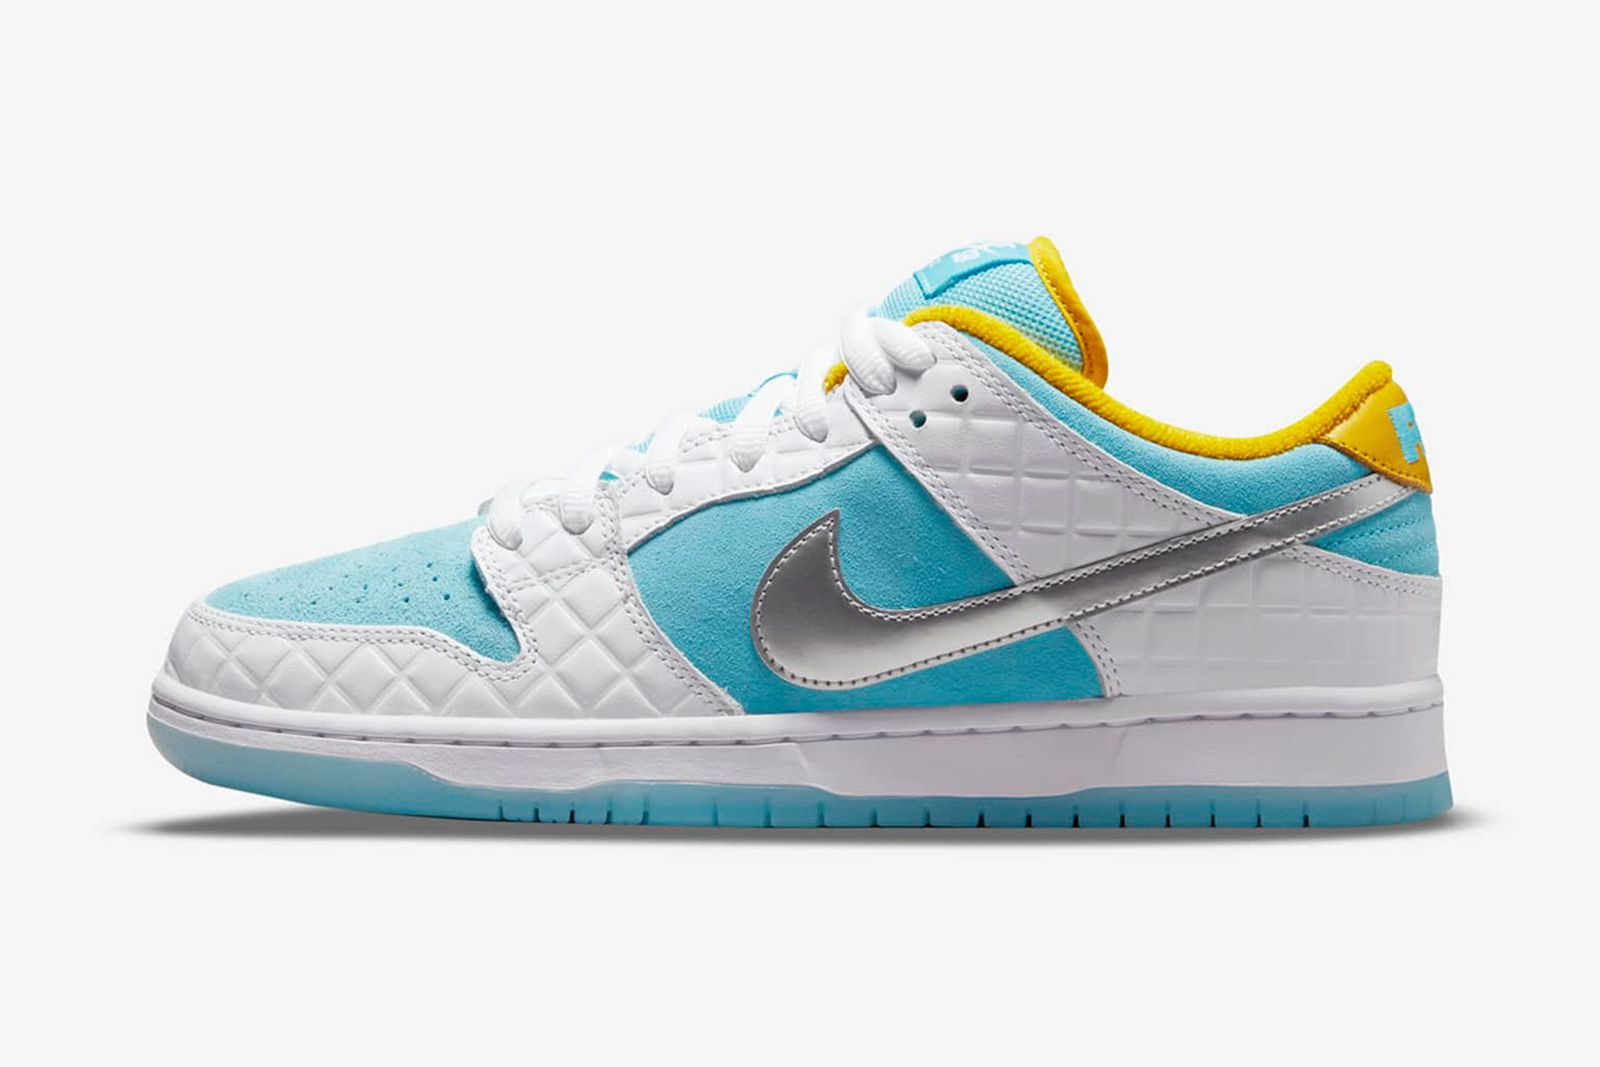 ftc-nike-sb-dunk-low-olympics-release-date-price-07